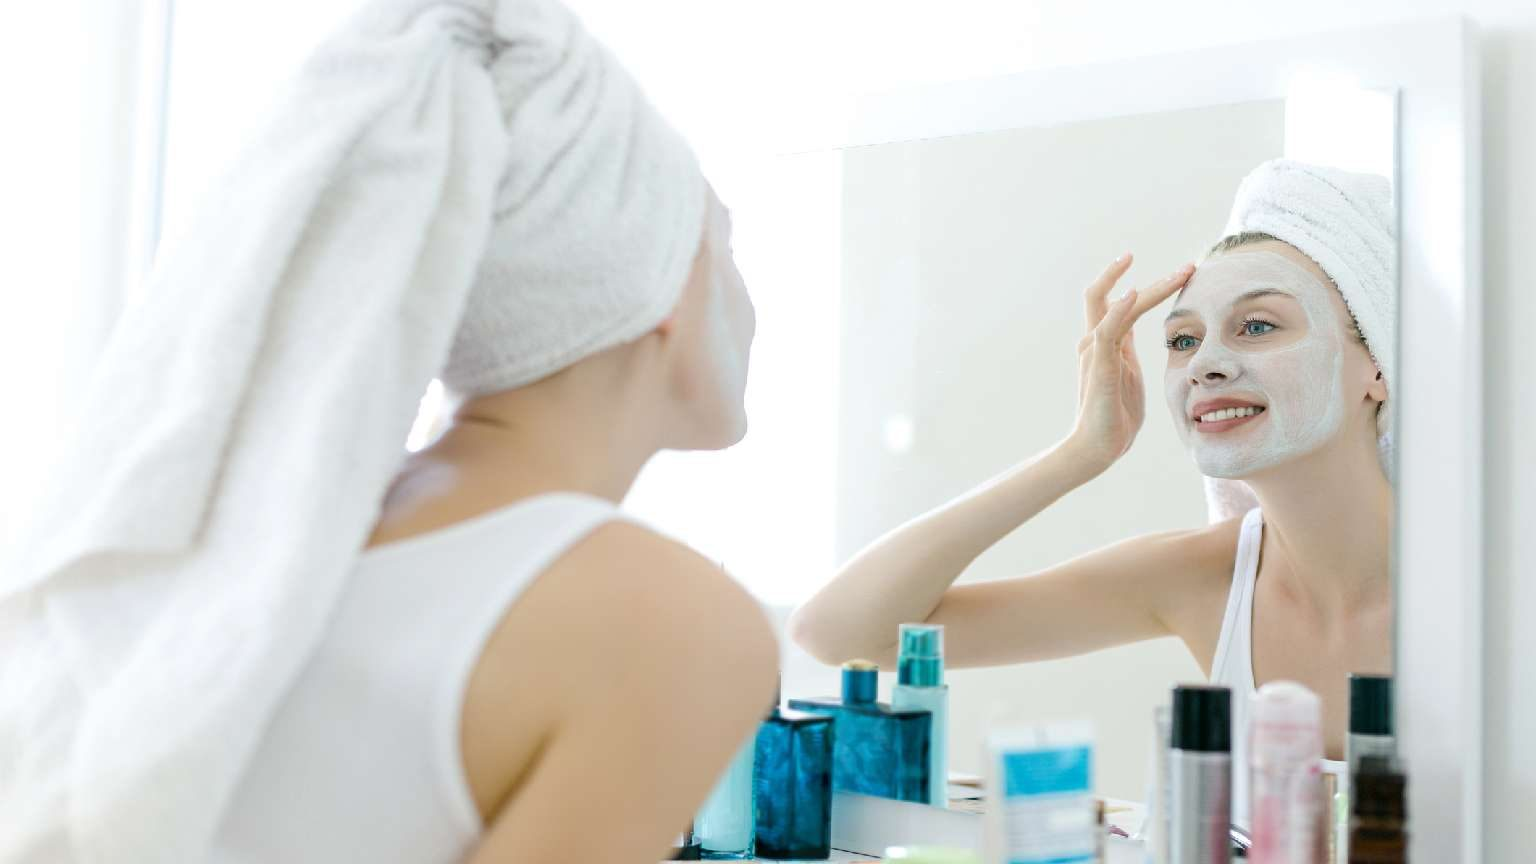 Woman applying face mask makeup looking in mirror and smiling.